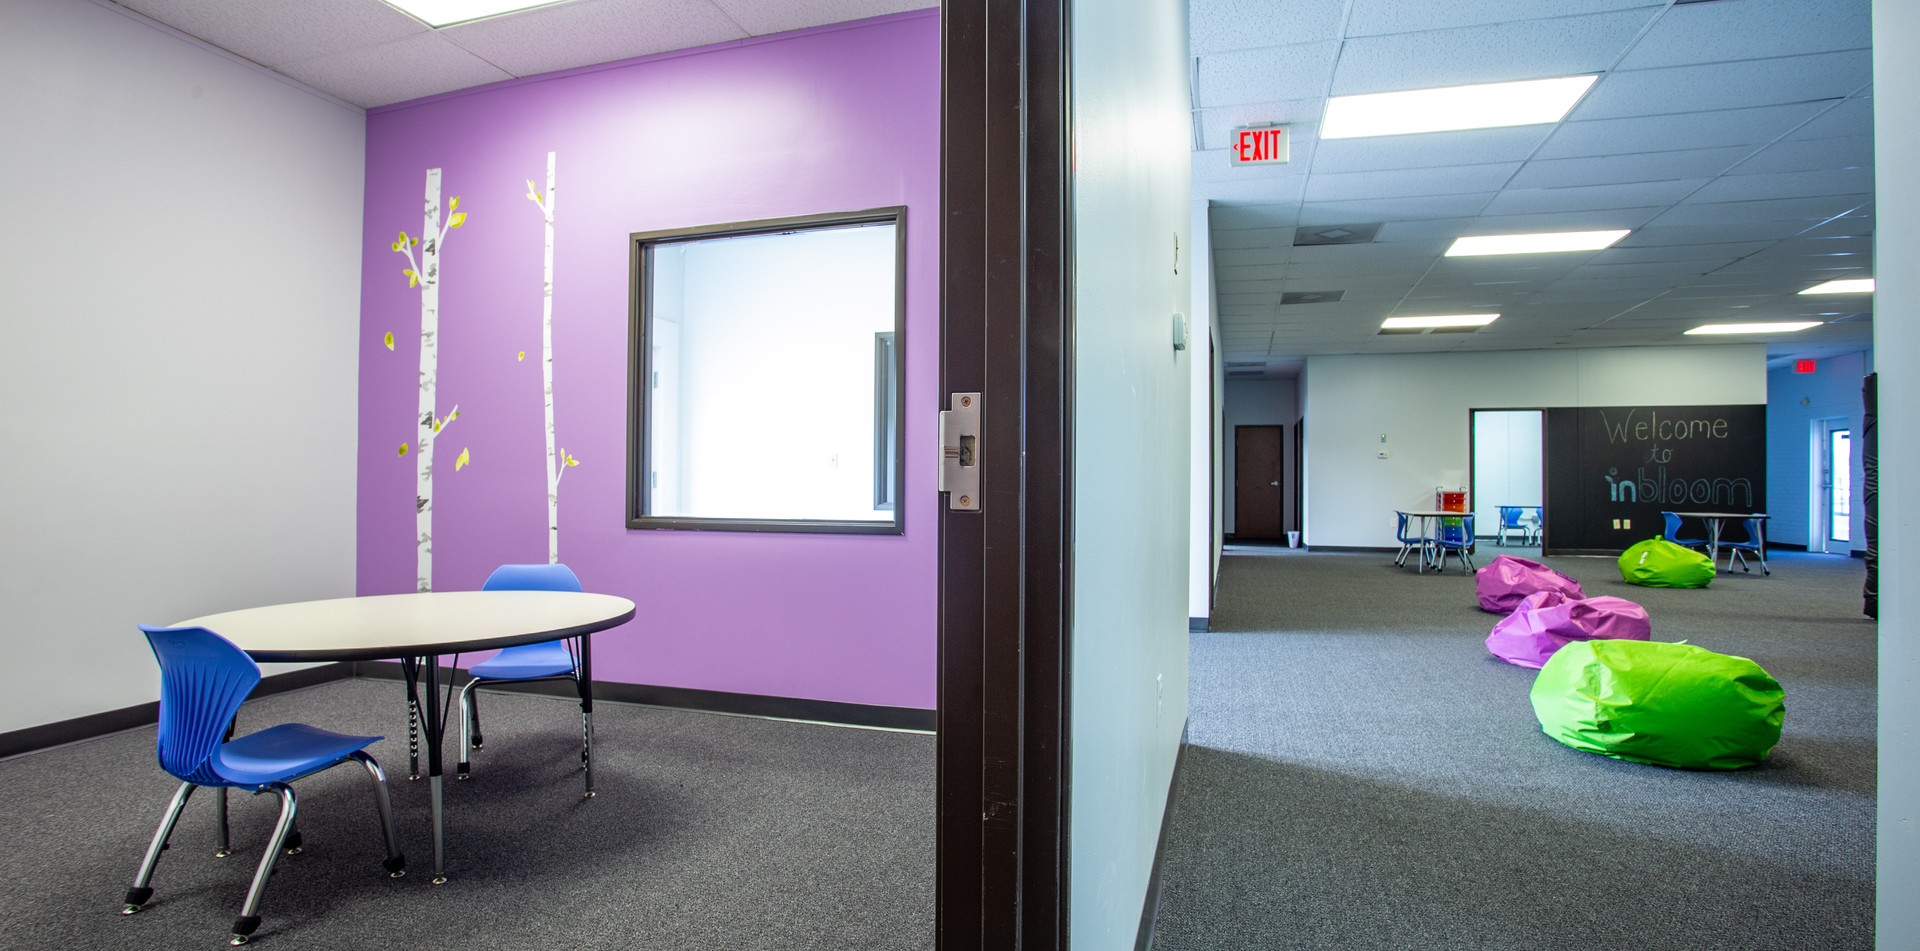 Austin Center Treatment Room